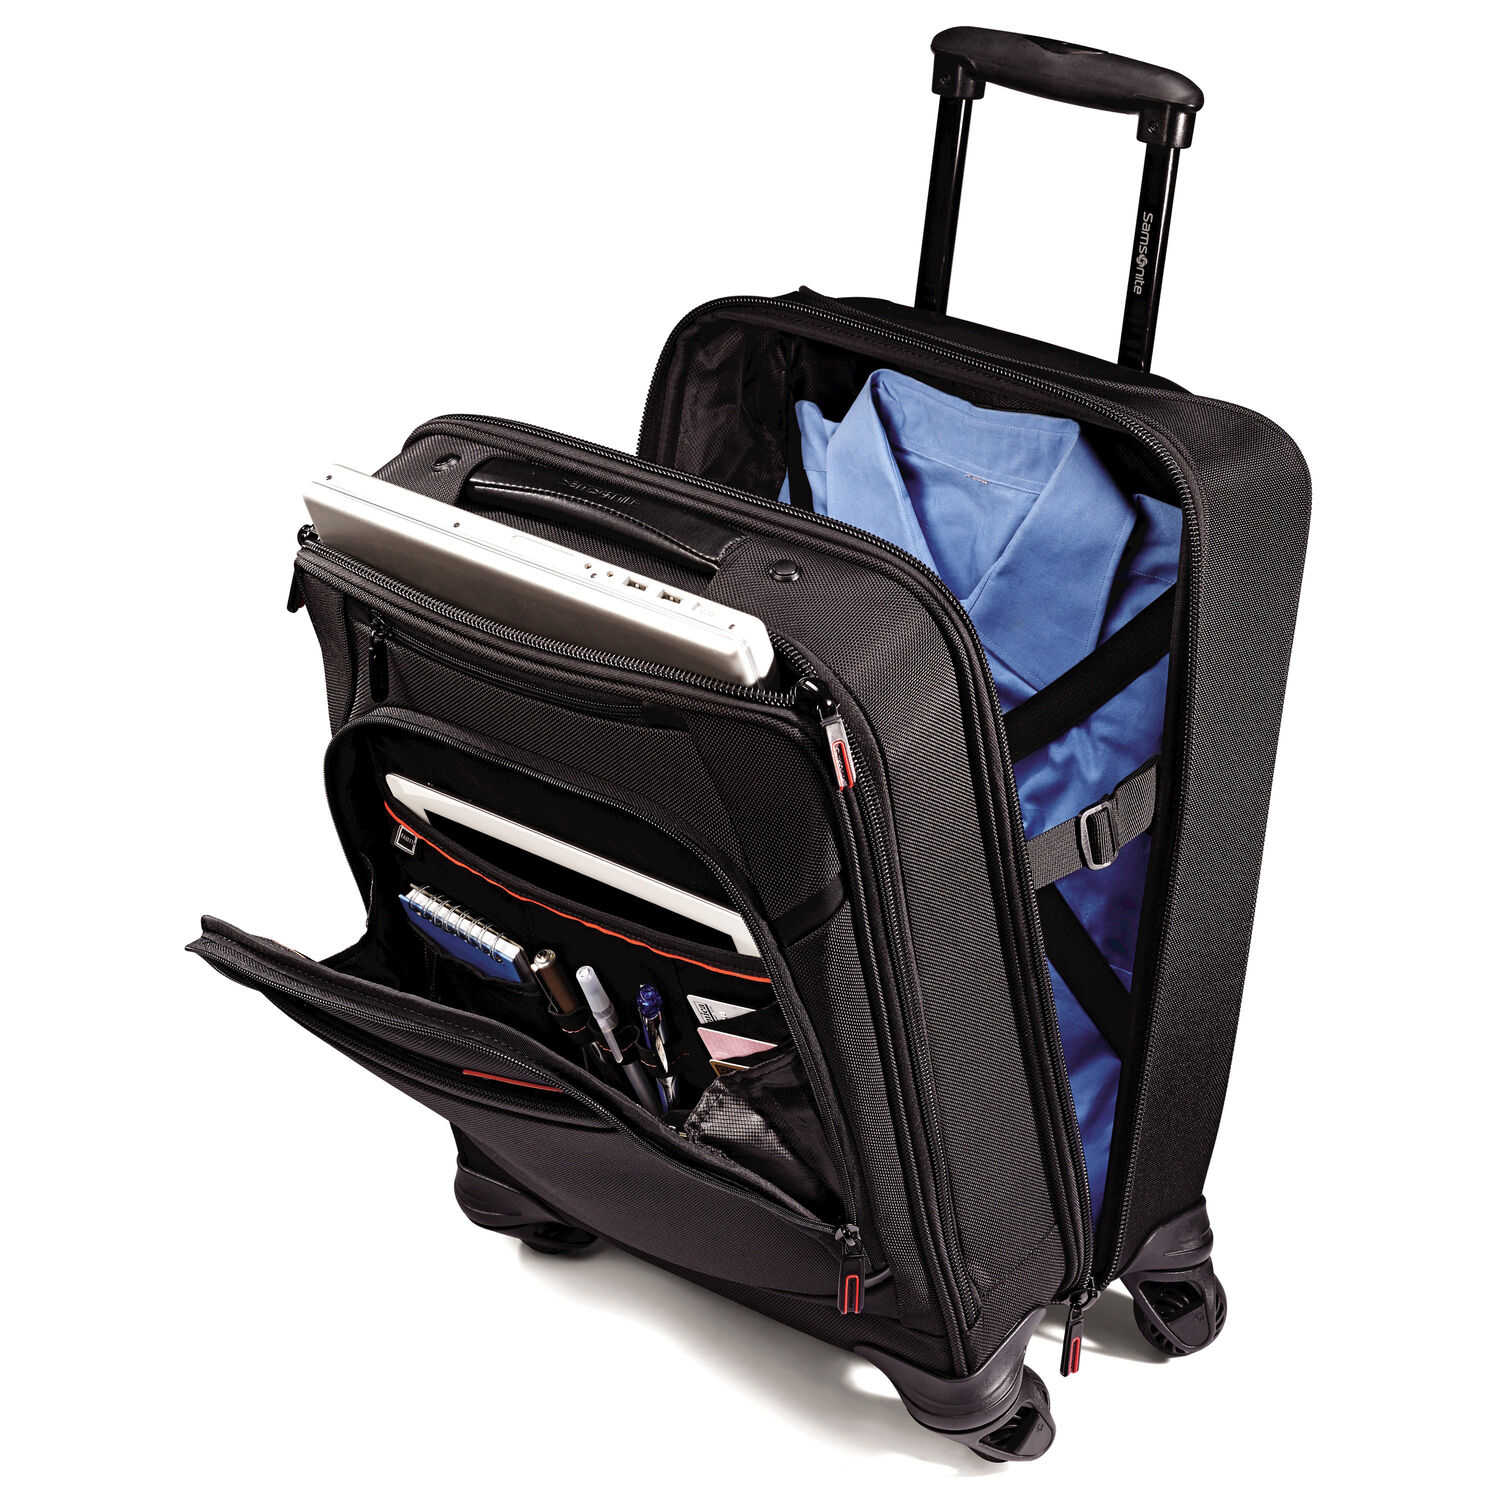 Samsonite pro 4 dlx vertical spinner mobile office - The mobile office working on two wheels ...